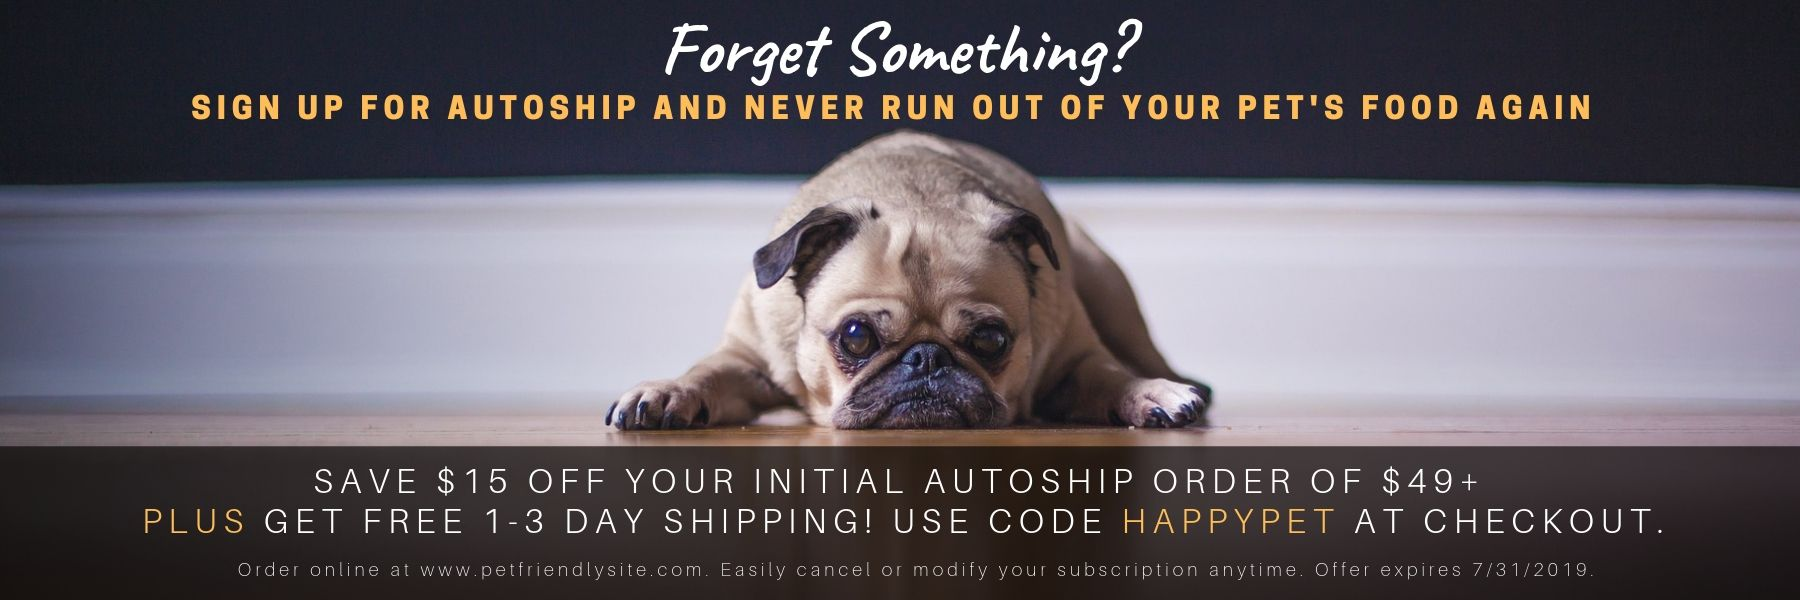 SAVE $15 OFF YOUR INITIAL AUTOSHIP ORDER OF $49 AND UP. PLUS GET FREE 1 TO 3 DAY SHIPPING. USE CODE HAPPYPET AT CHECKOUT ON OUR WEBSITE.